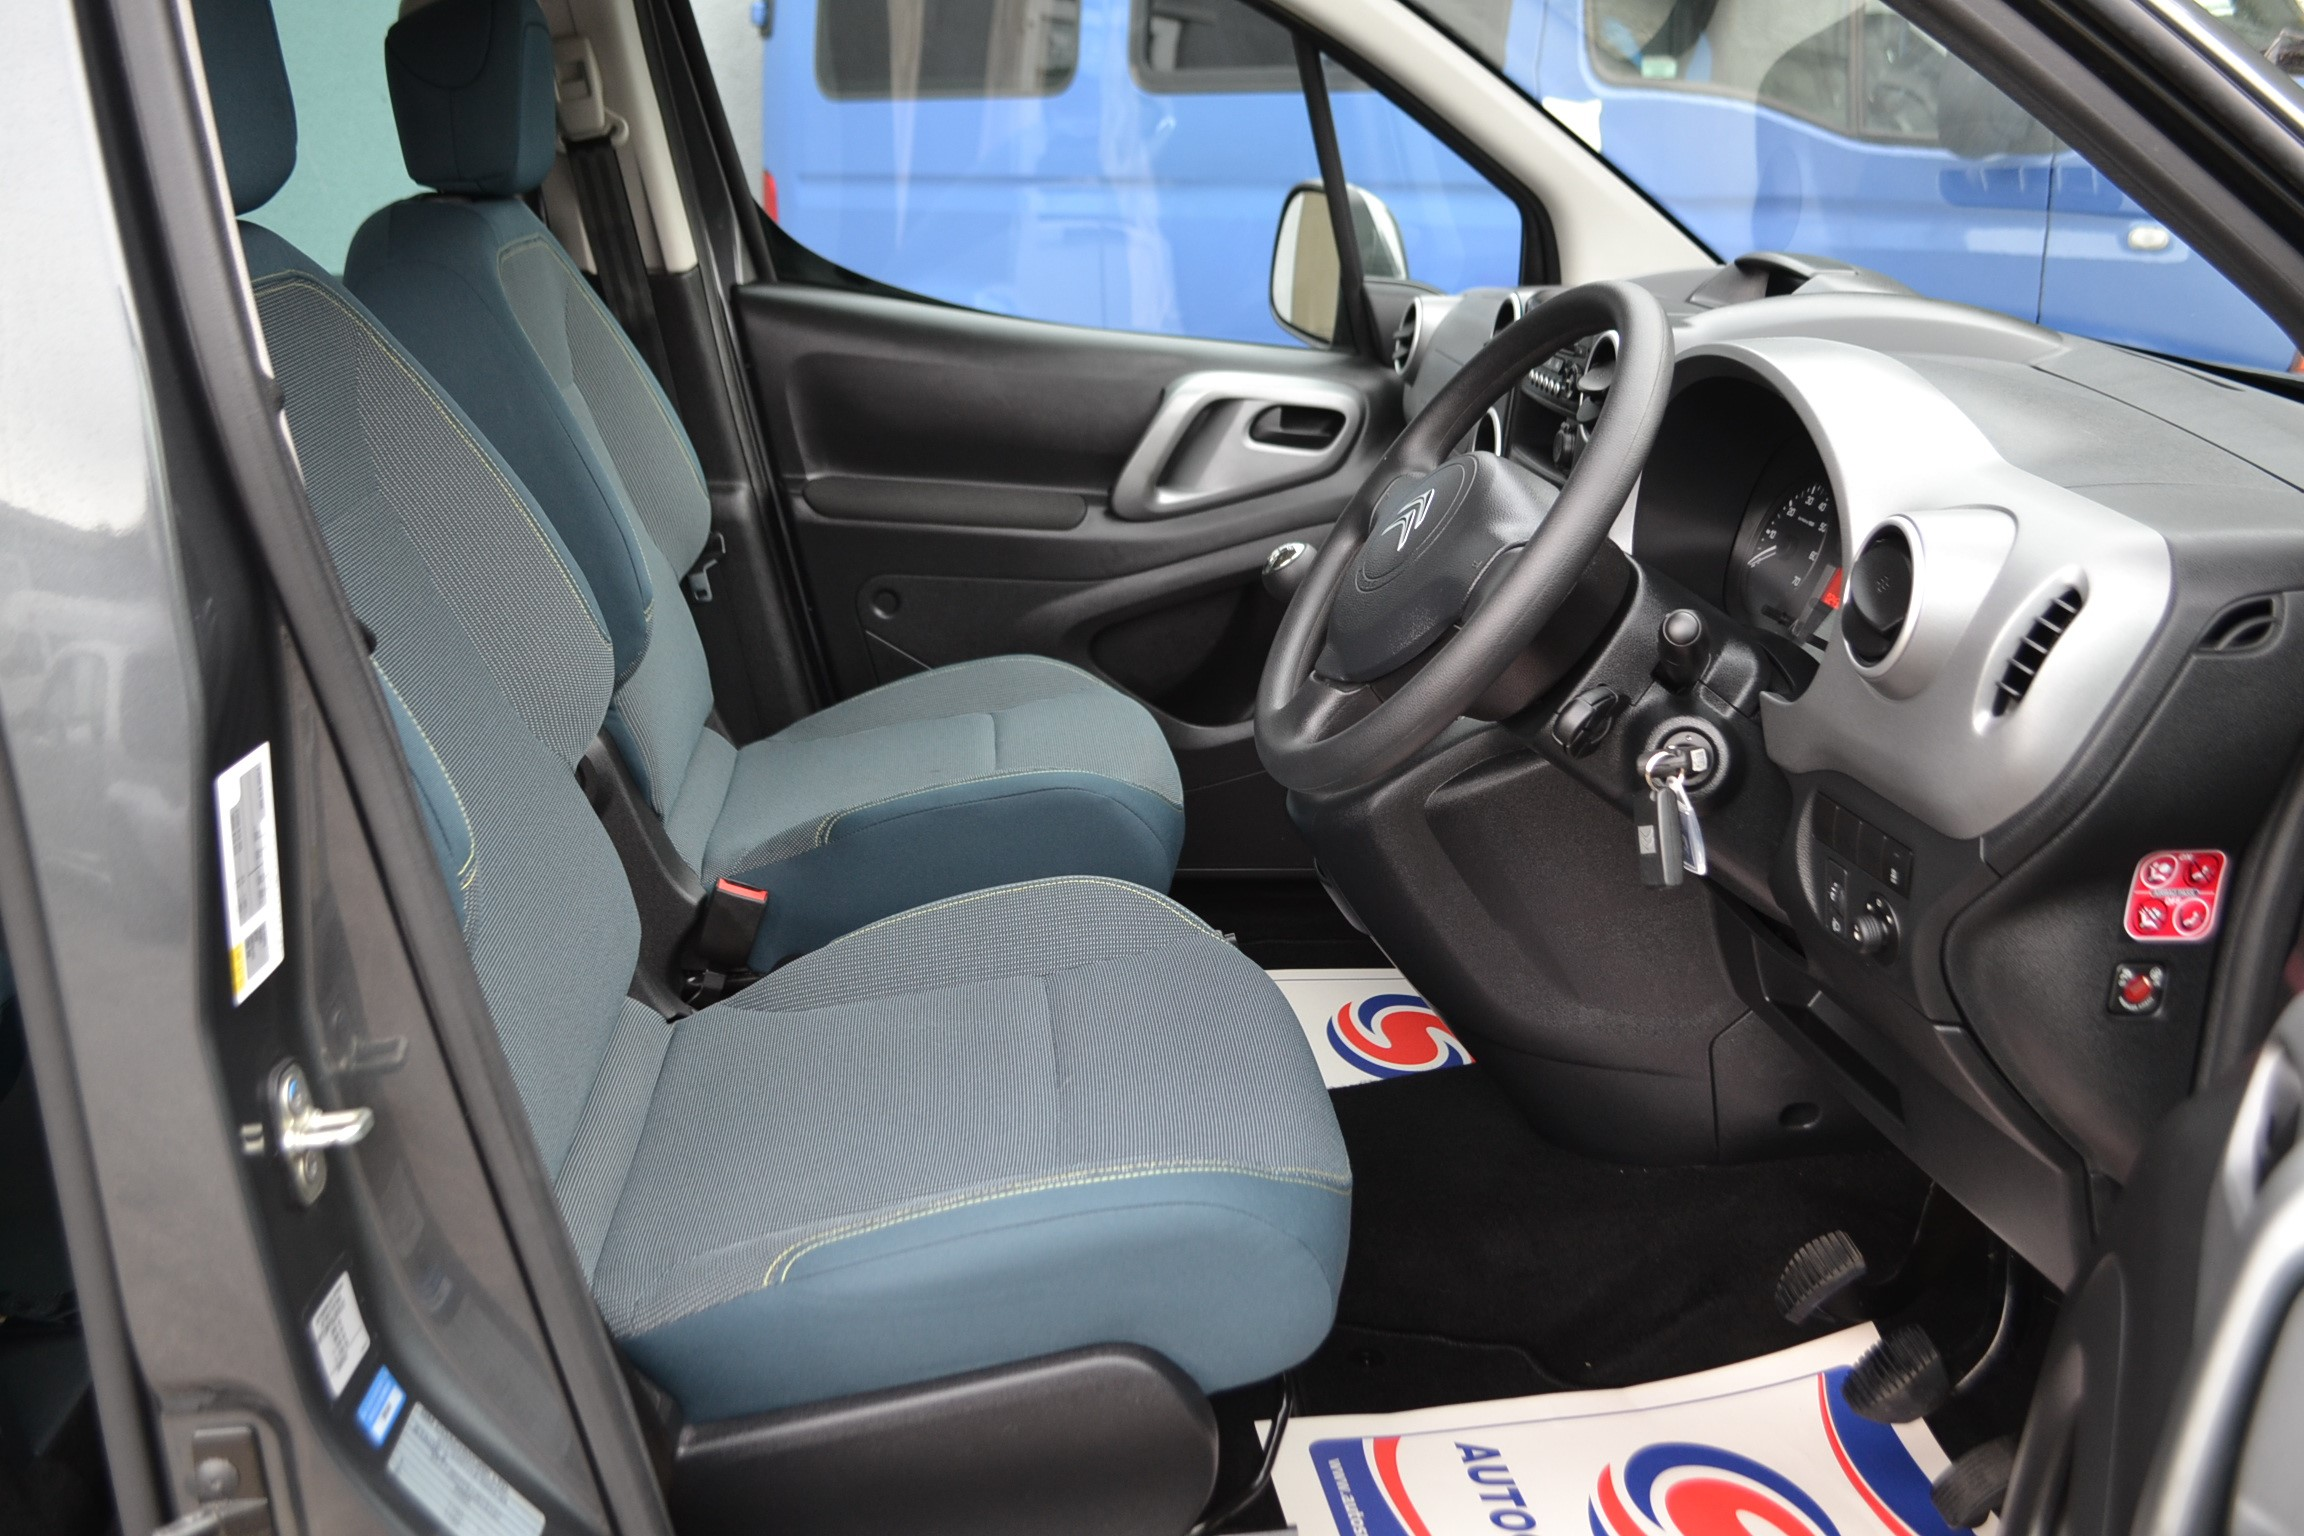 Disabled Cars For Sale Bristol Wheelchair Accessible Vehicles Used For Sale Somerset Devon Dorset Bath Peugeot Partner WA68 EVU 17